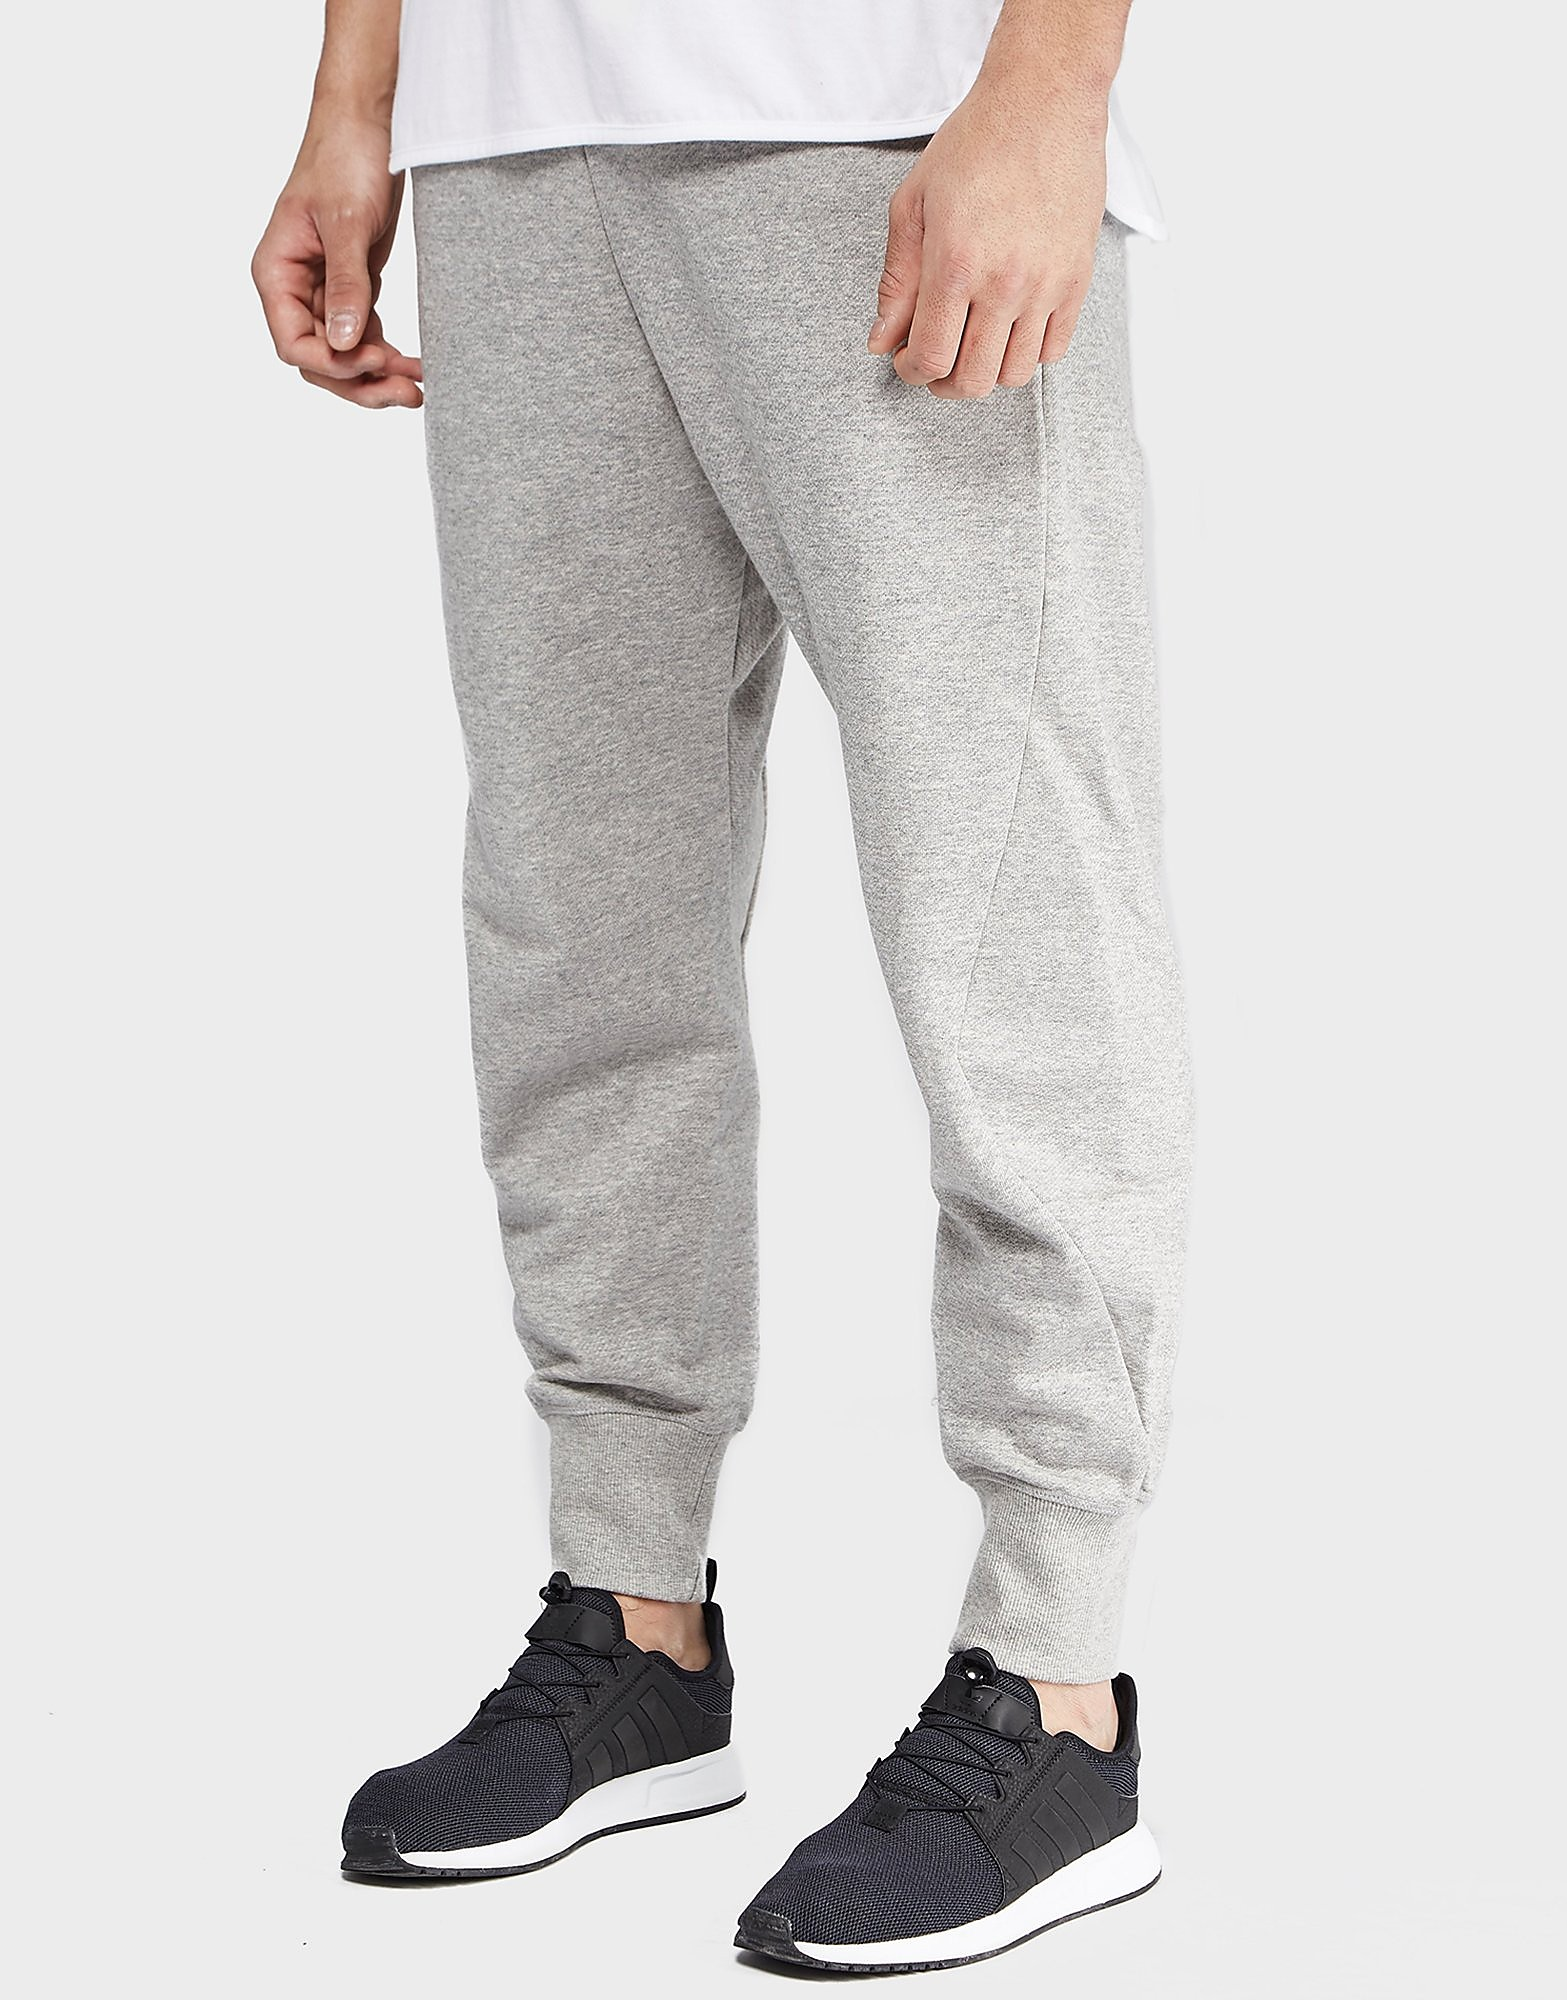 adidas Originals XBYO Sweat Pant